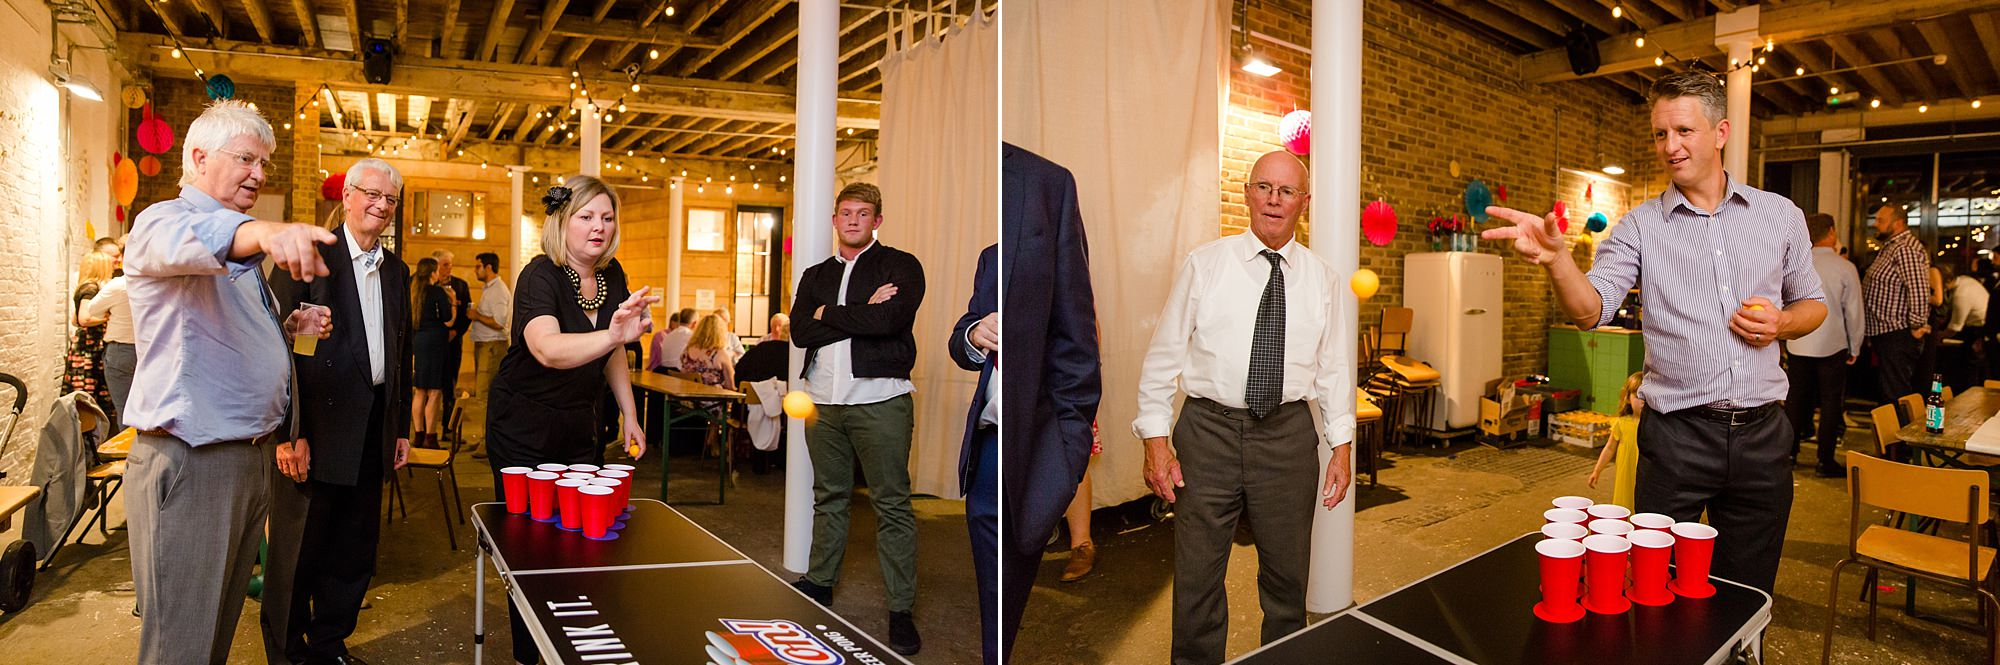 Fun London Wedding guests play beer pong at brixton east